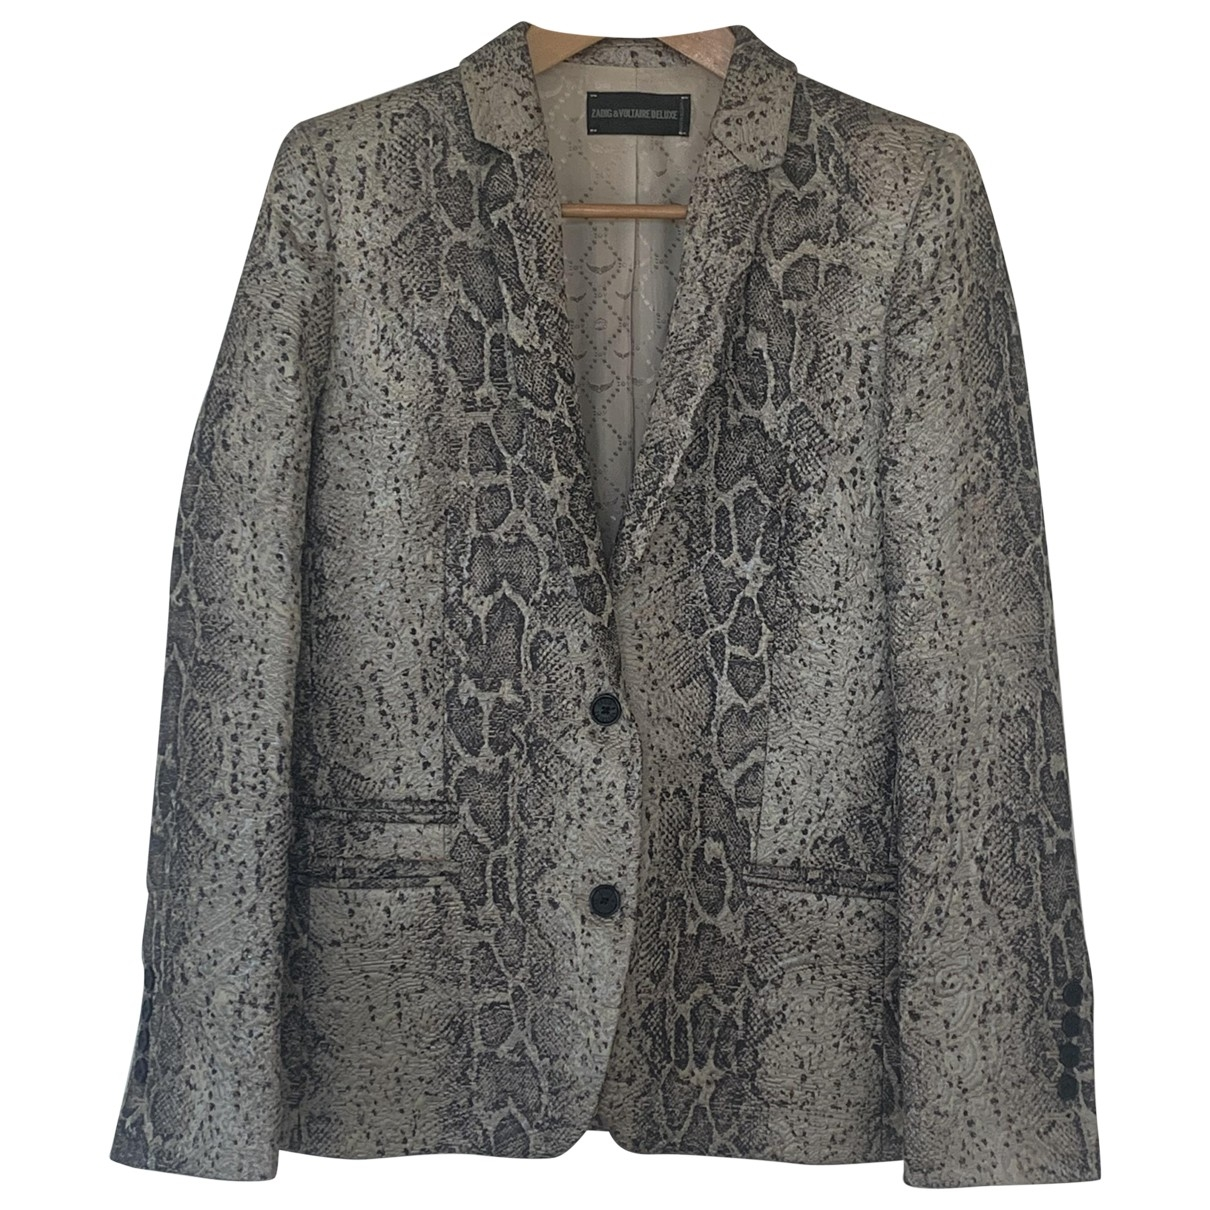 Zadig & Voltaire \N Silver Cotton jacket for Women 38 FR